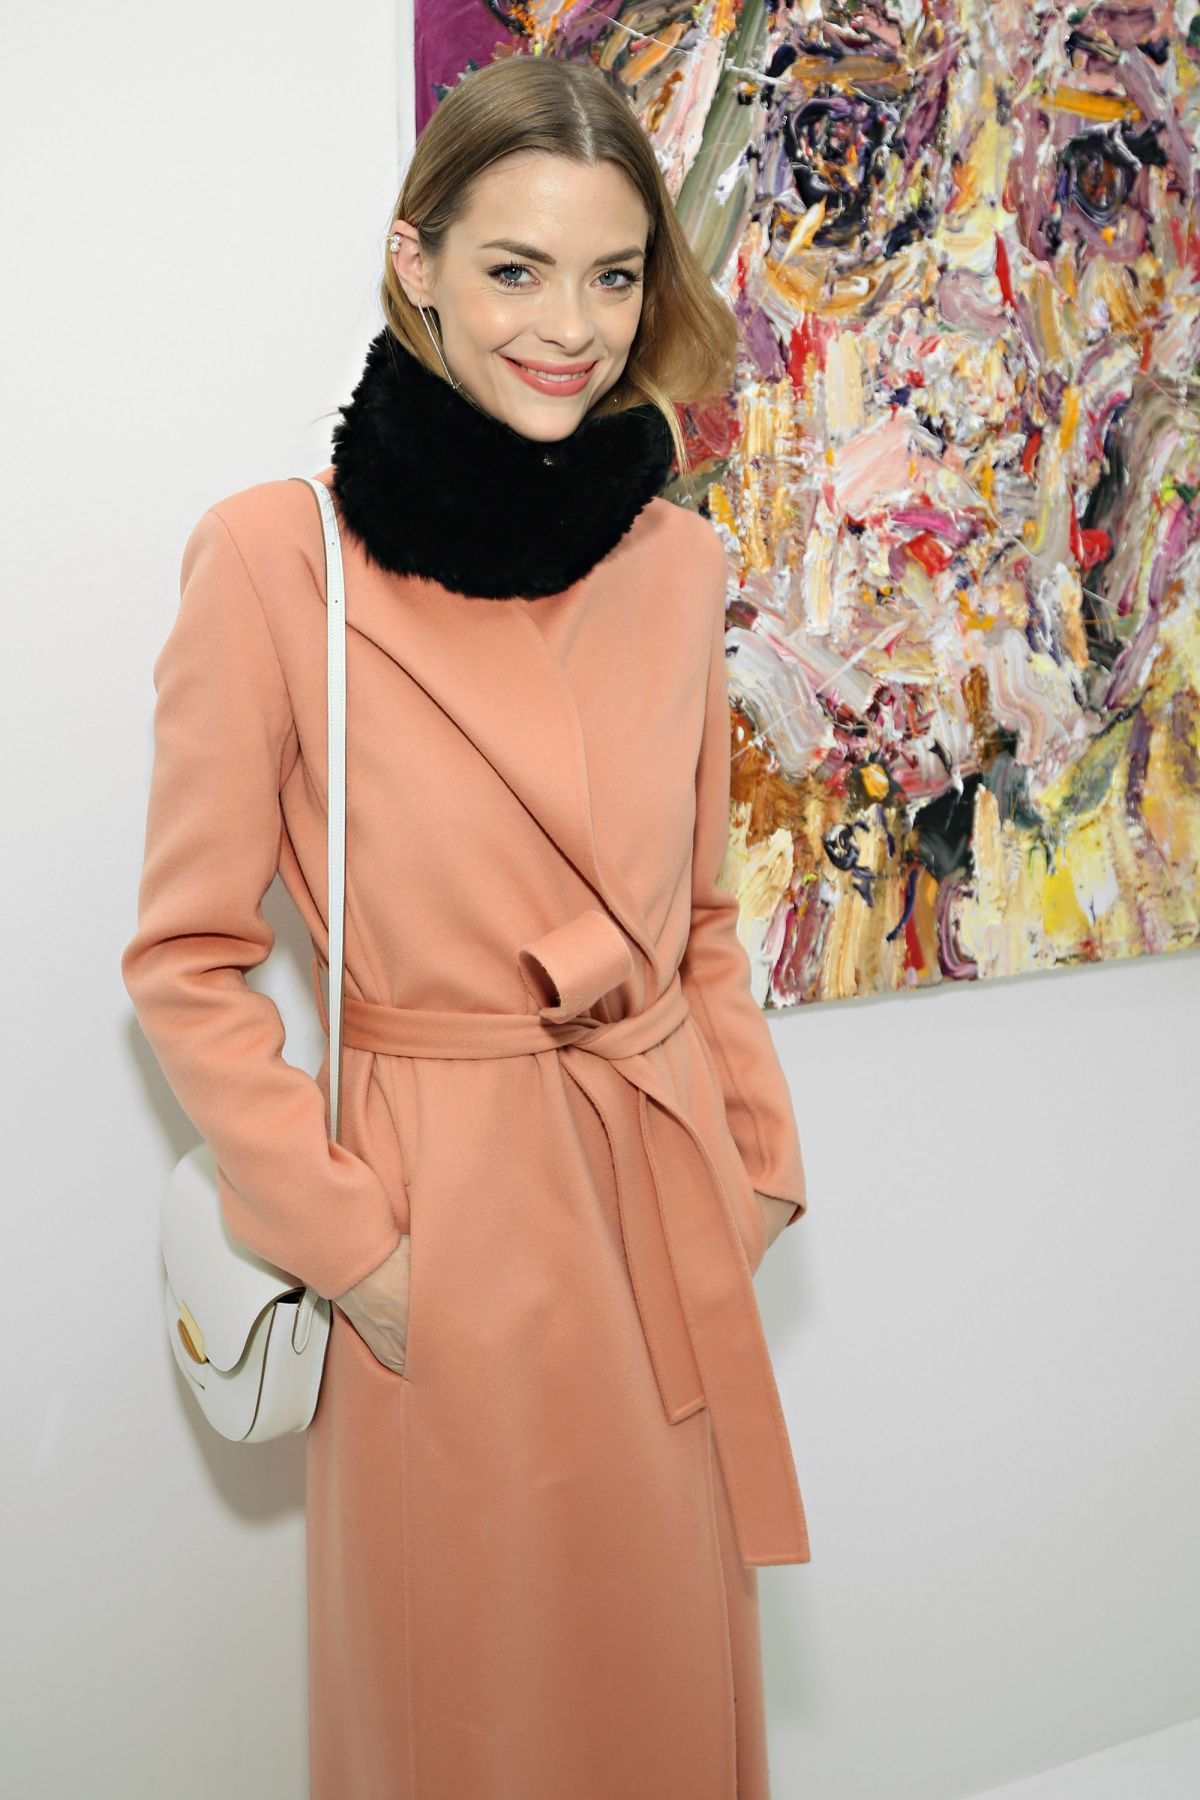 Jaime King At Voyeur by Vanessa Prager Hosted by Fred Armisen In NYC